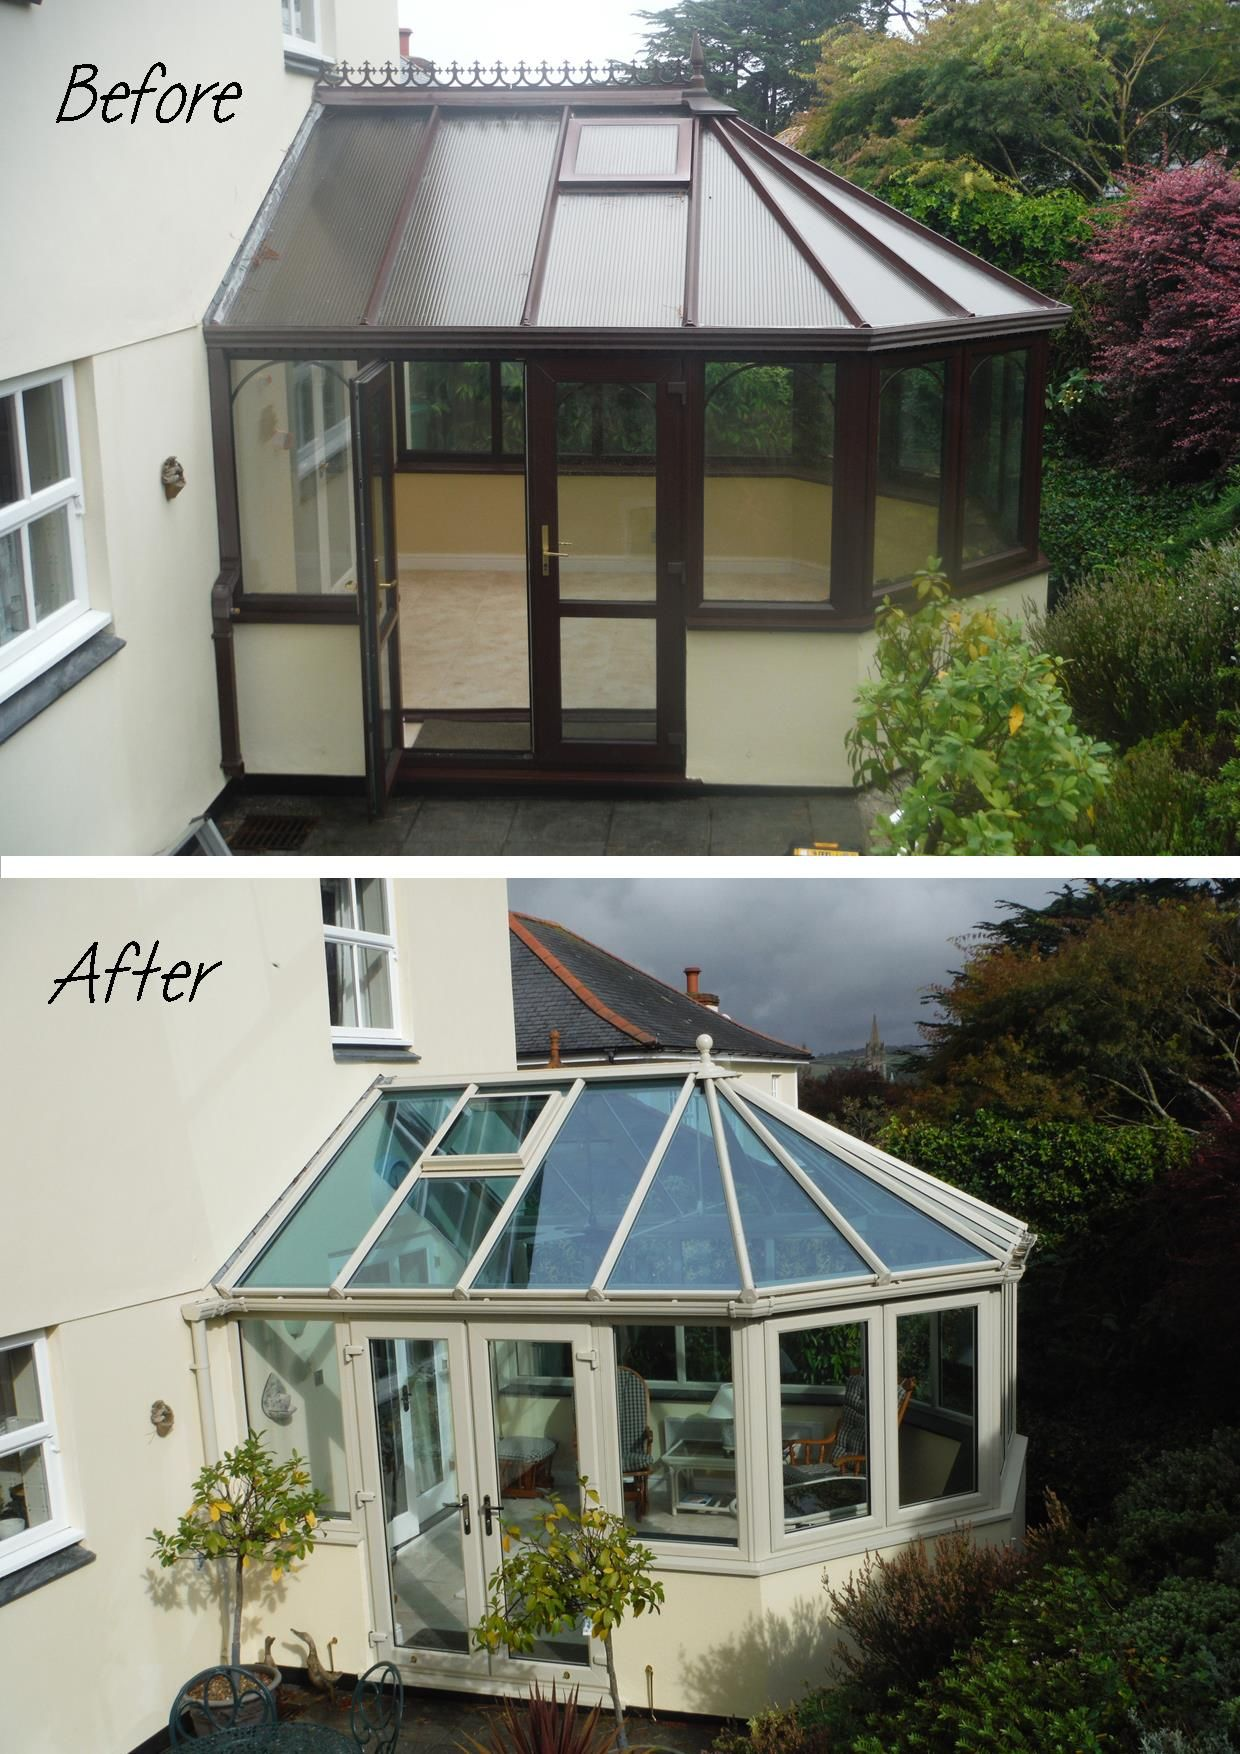 Before And After Painted Upvc Conservatory Installed In Truro Cornwall By Philip Whear Windo Conservatory Decor Conservatory Interiors Conservatory Interior